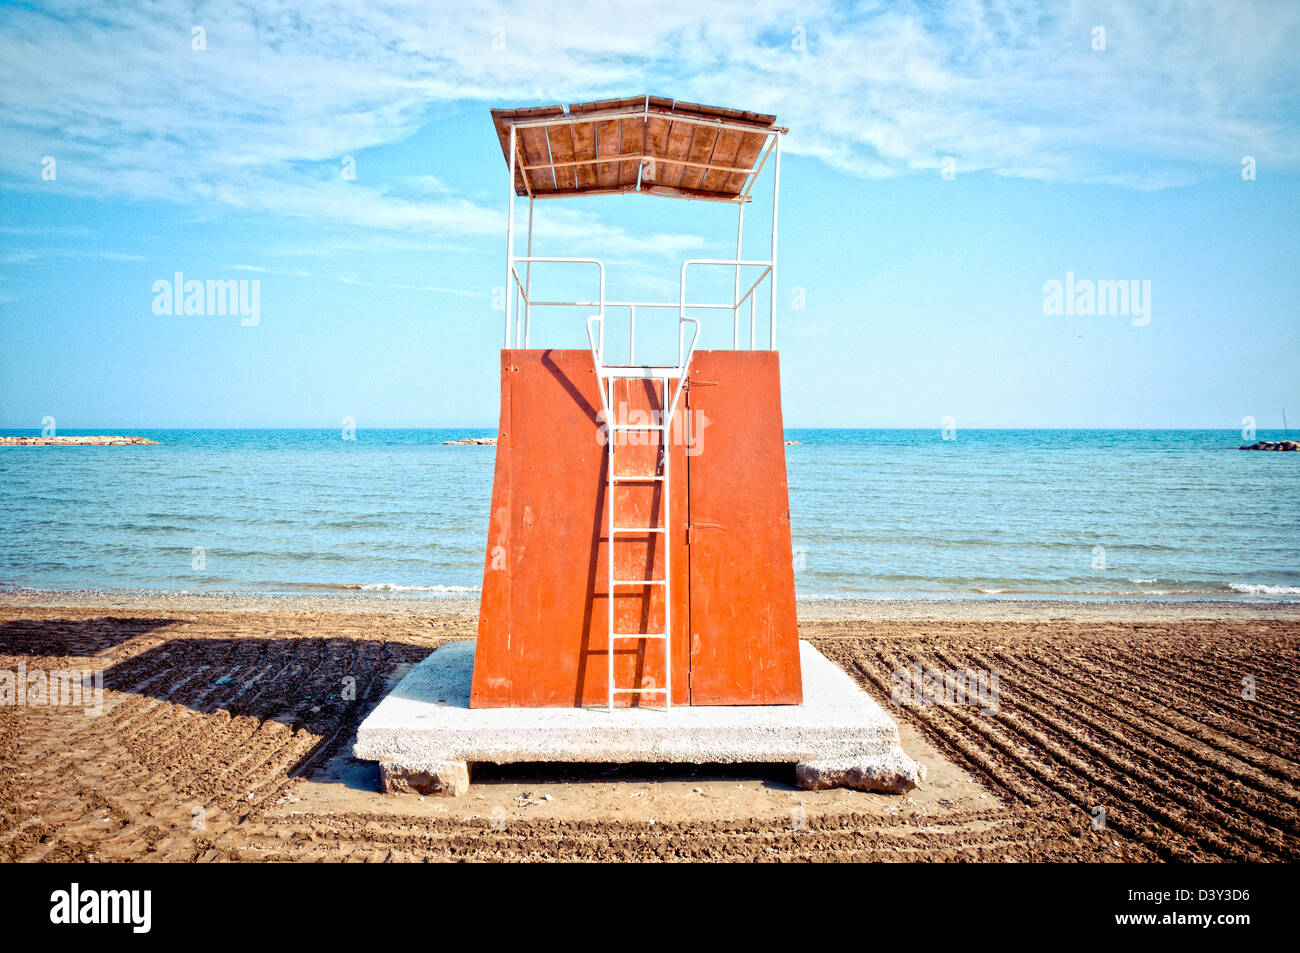 Baywatch tower in Larnaca, Cyprus - Stock Image